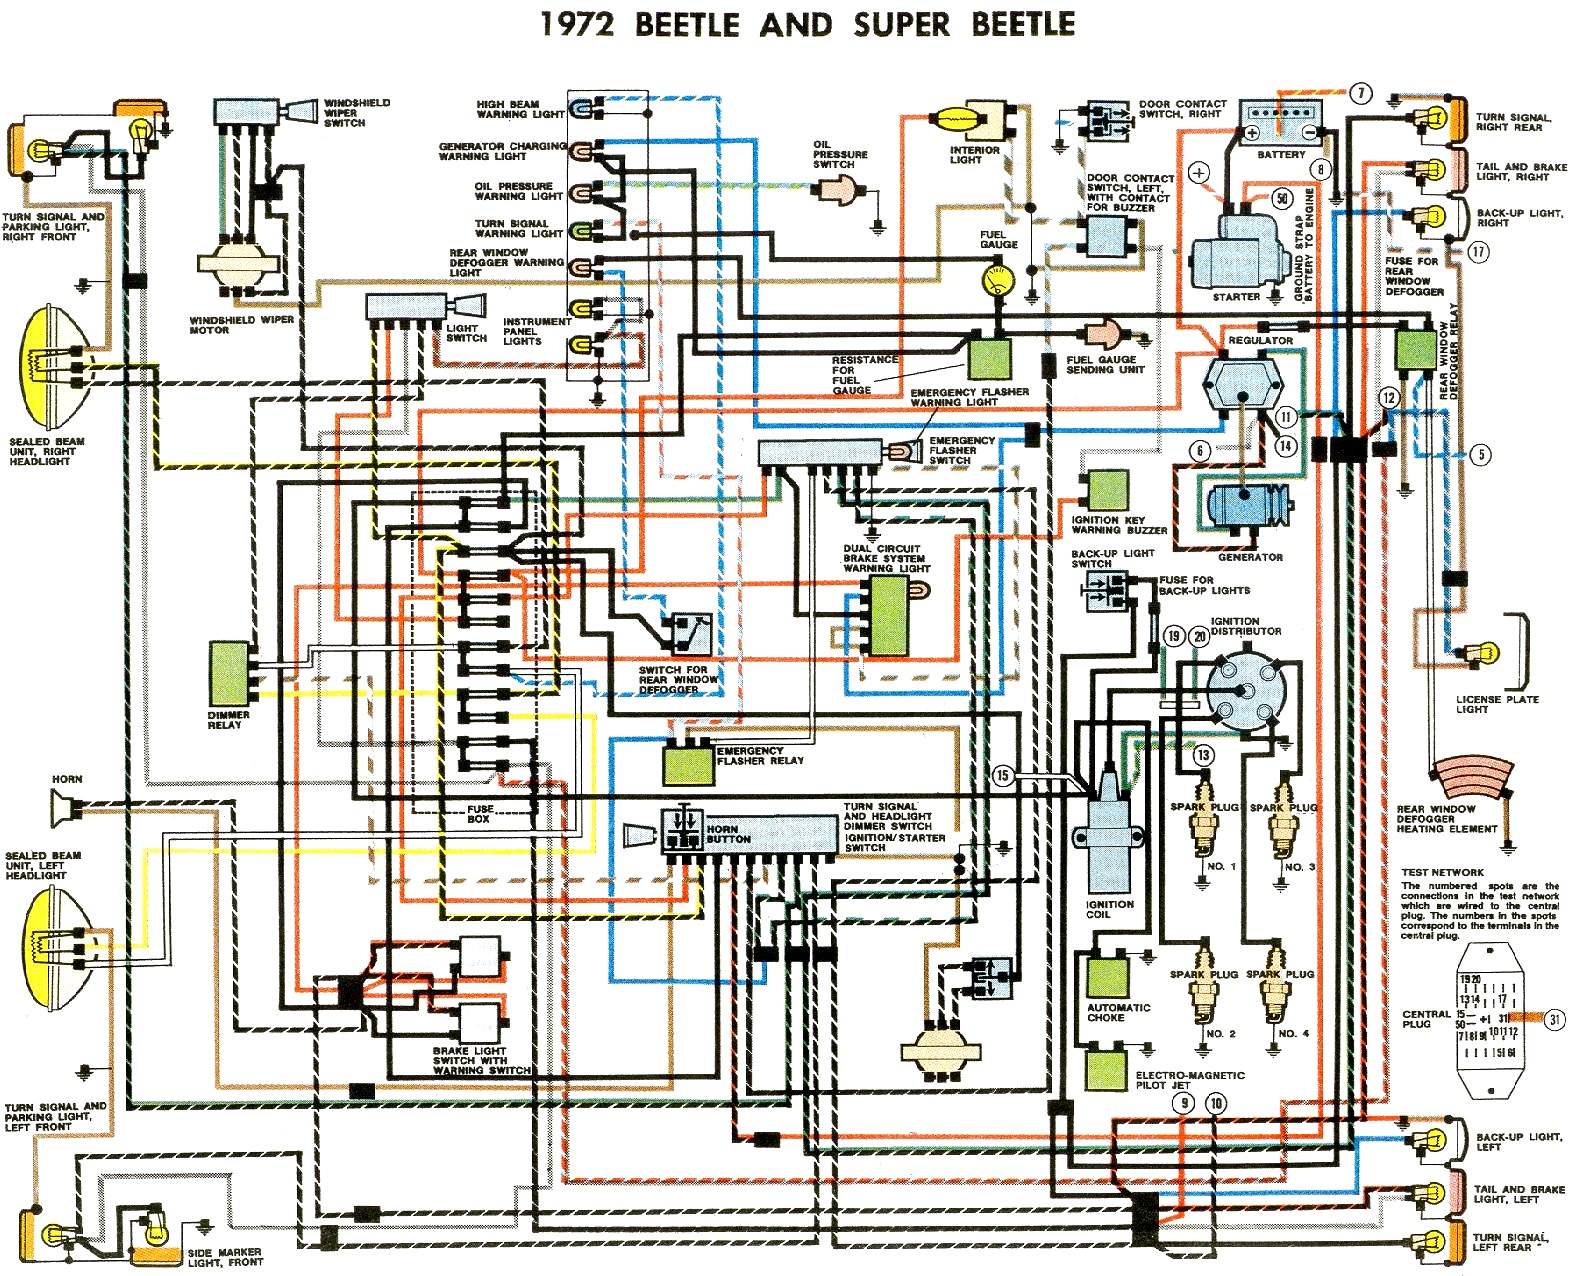 bug_72 vw golf 1 wiring diagram vw golf 1 wiring diagram \u2022 wiring 2002 vw cabrio wiring diagram at crackthecode.co